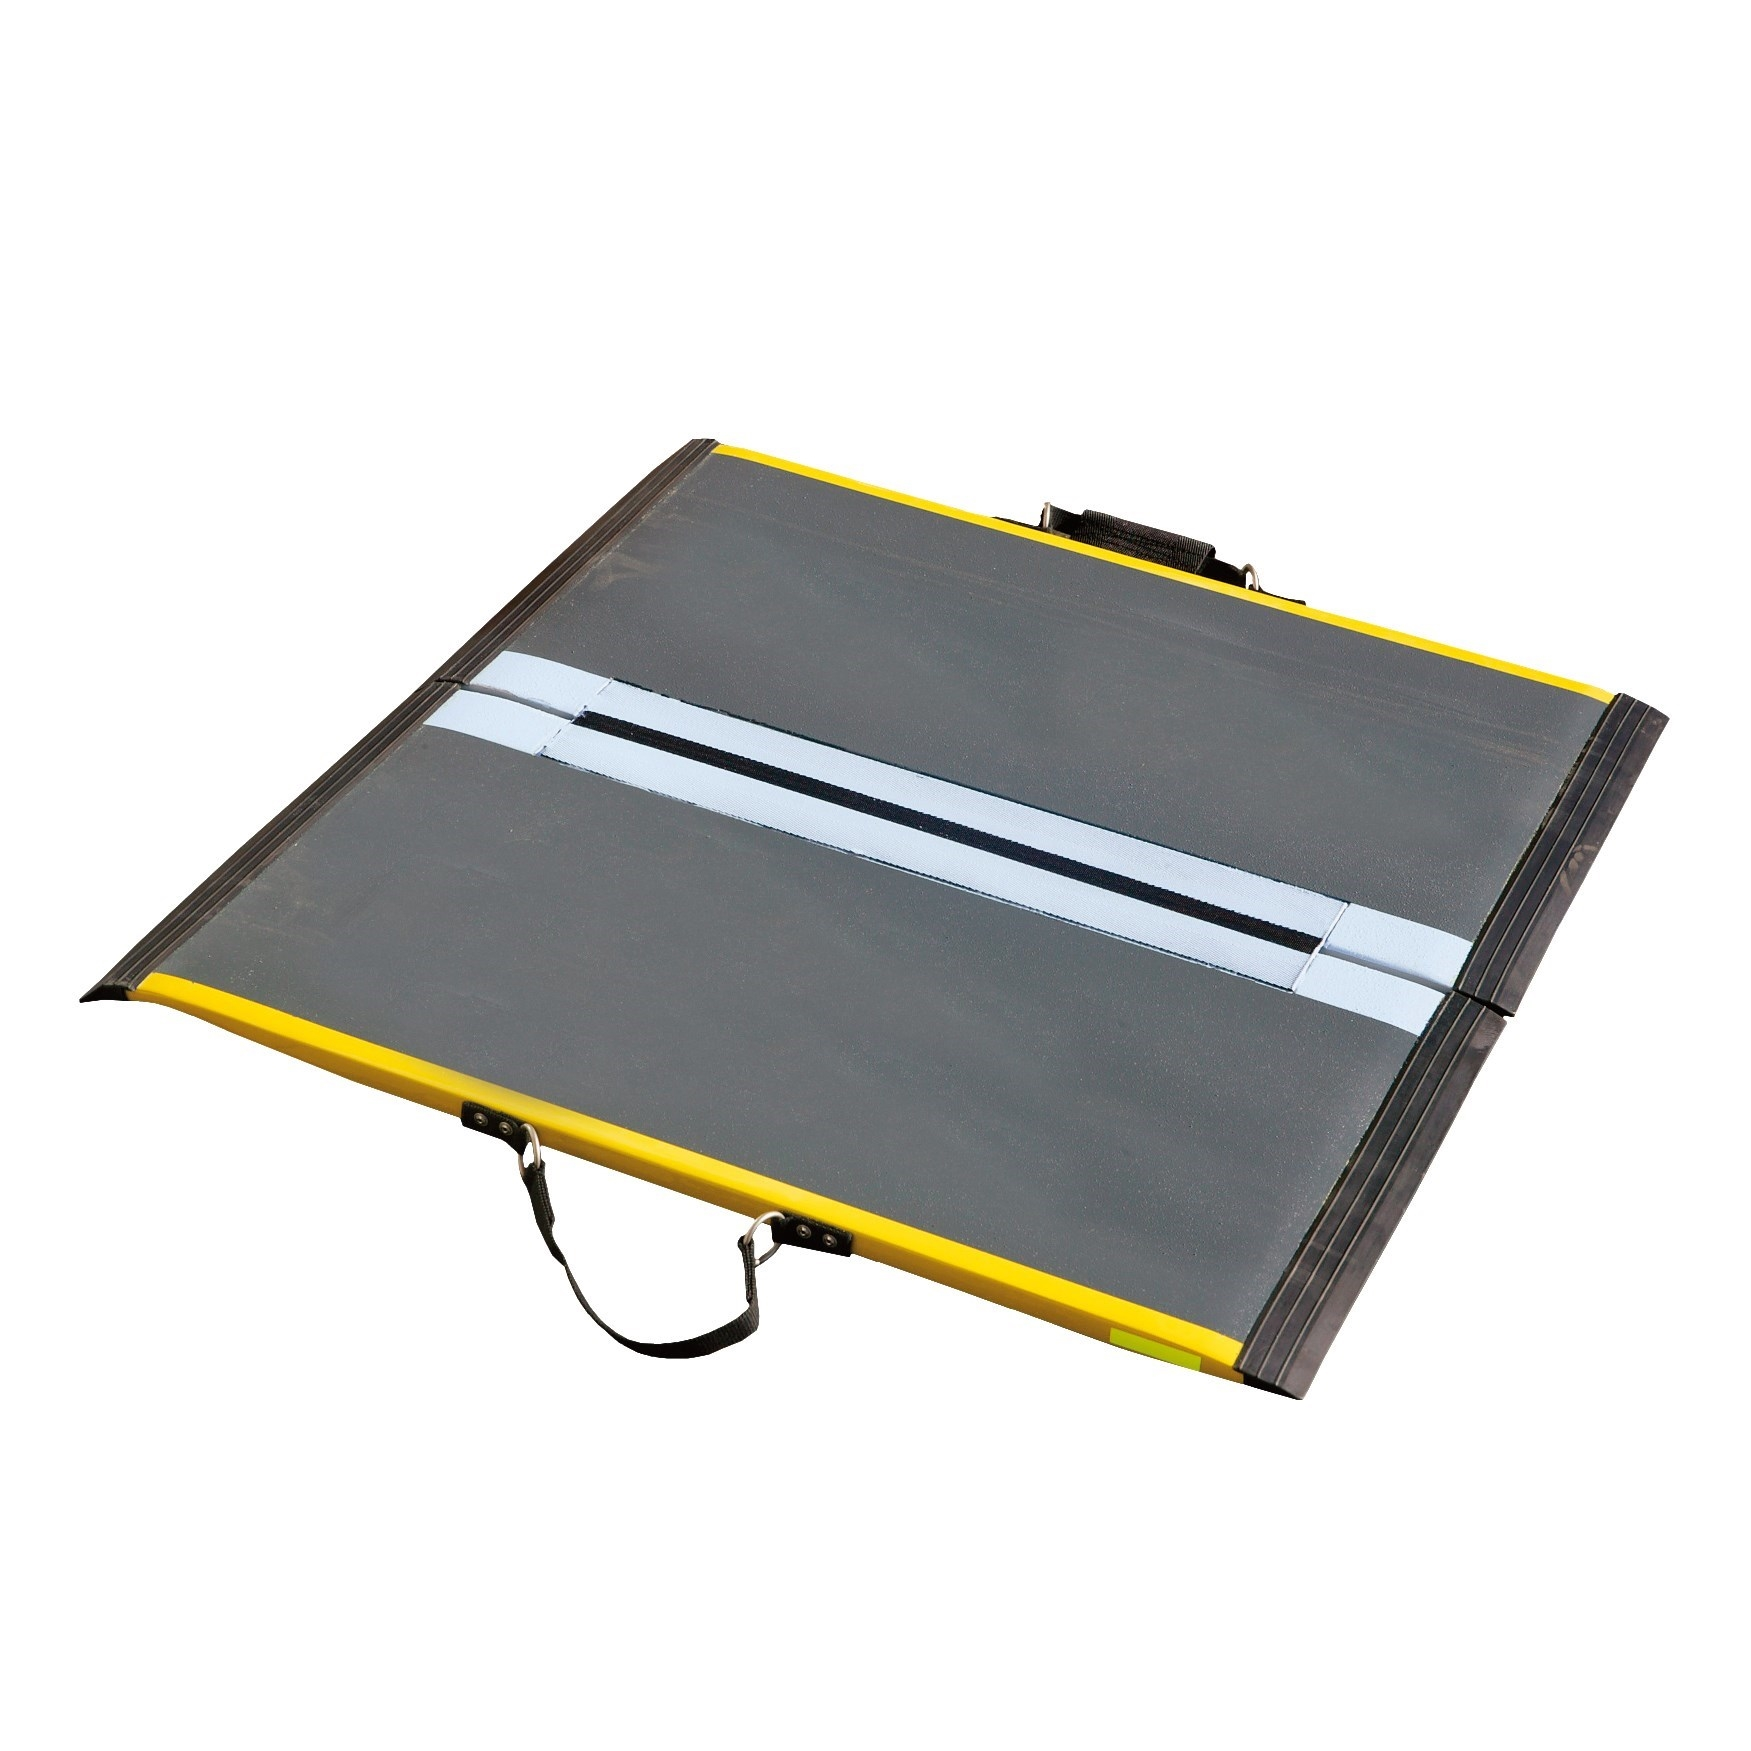 Lite ramps - Strong ramps in the lightweight class